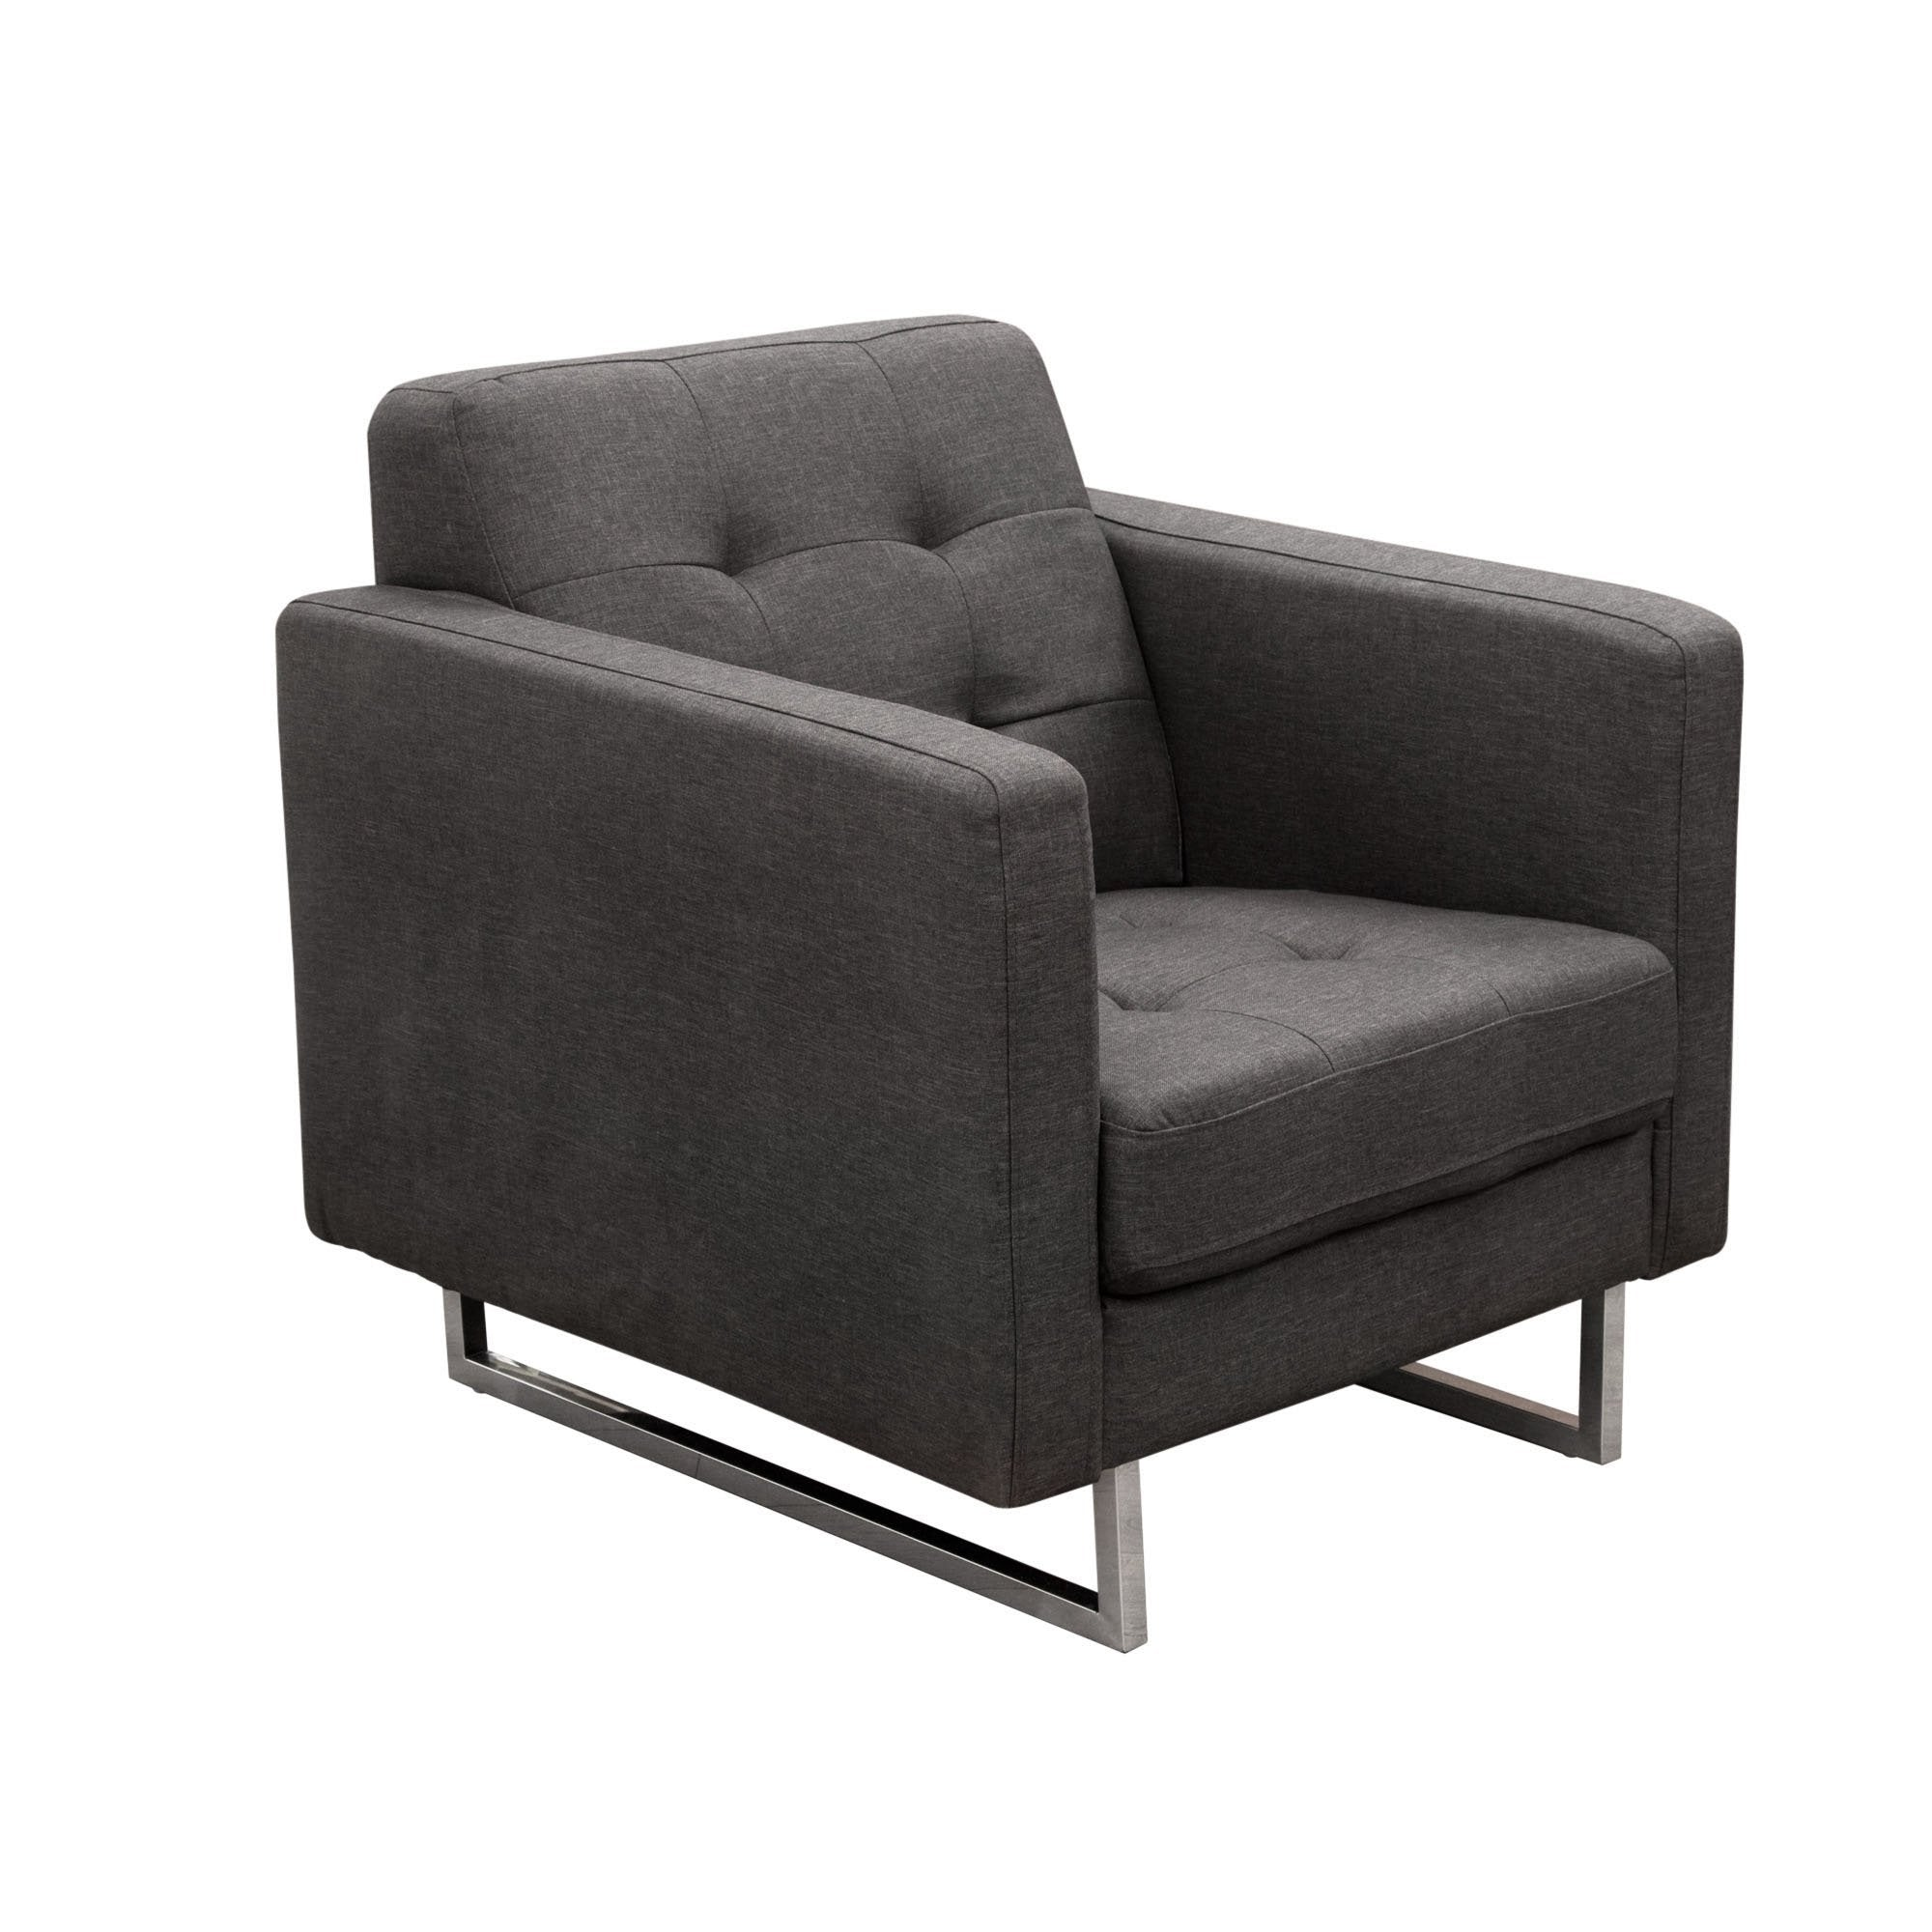 Opus Tufted Chair by Diamond Sofa